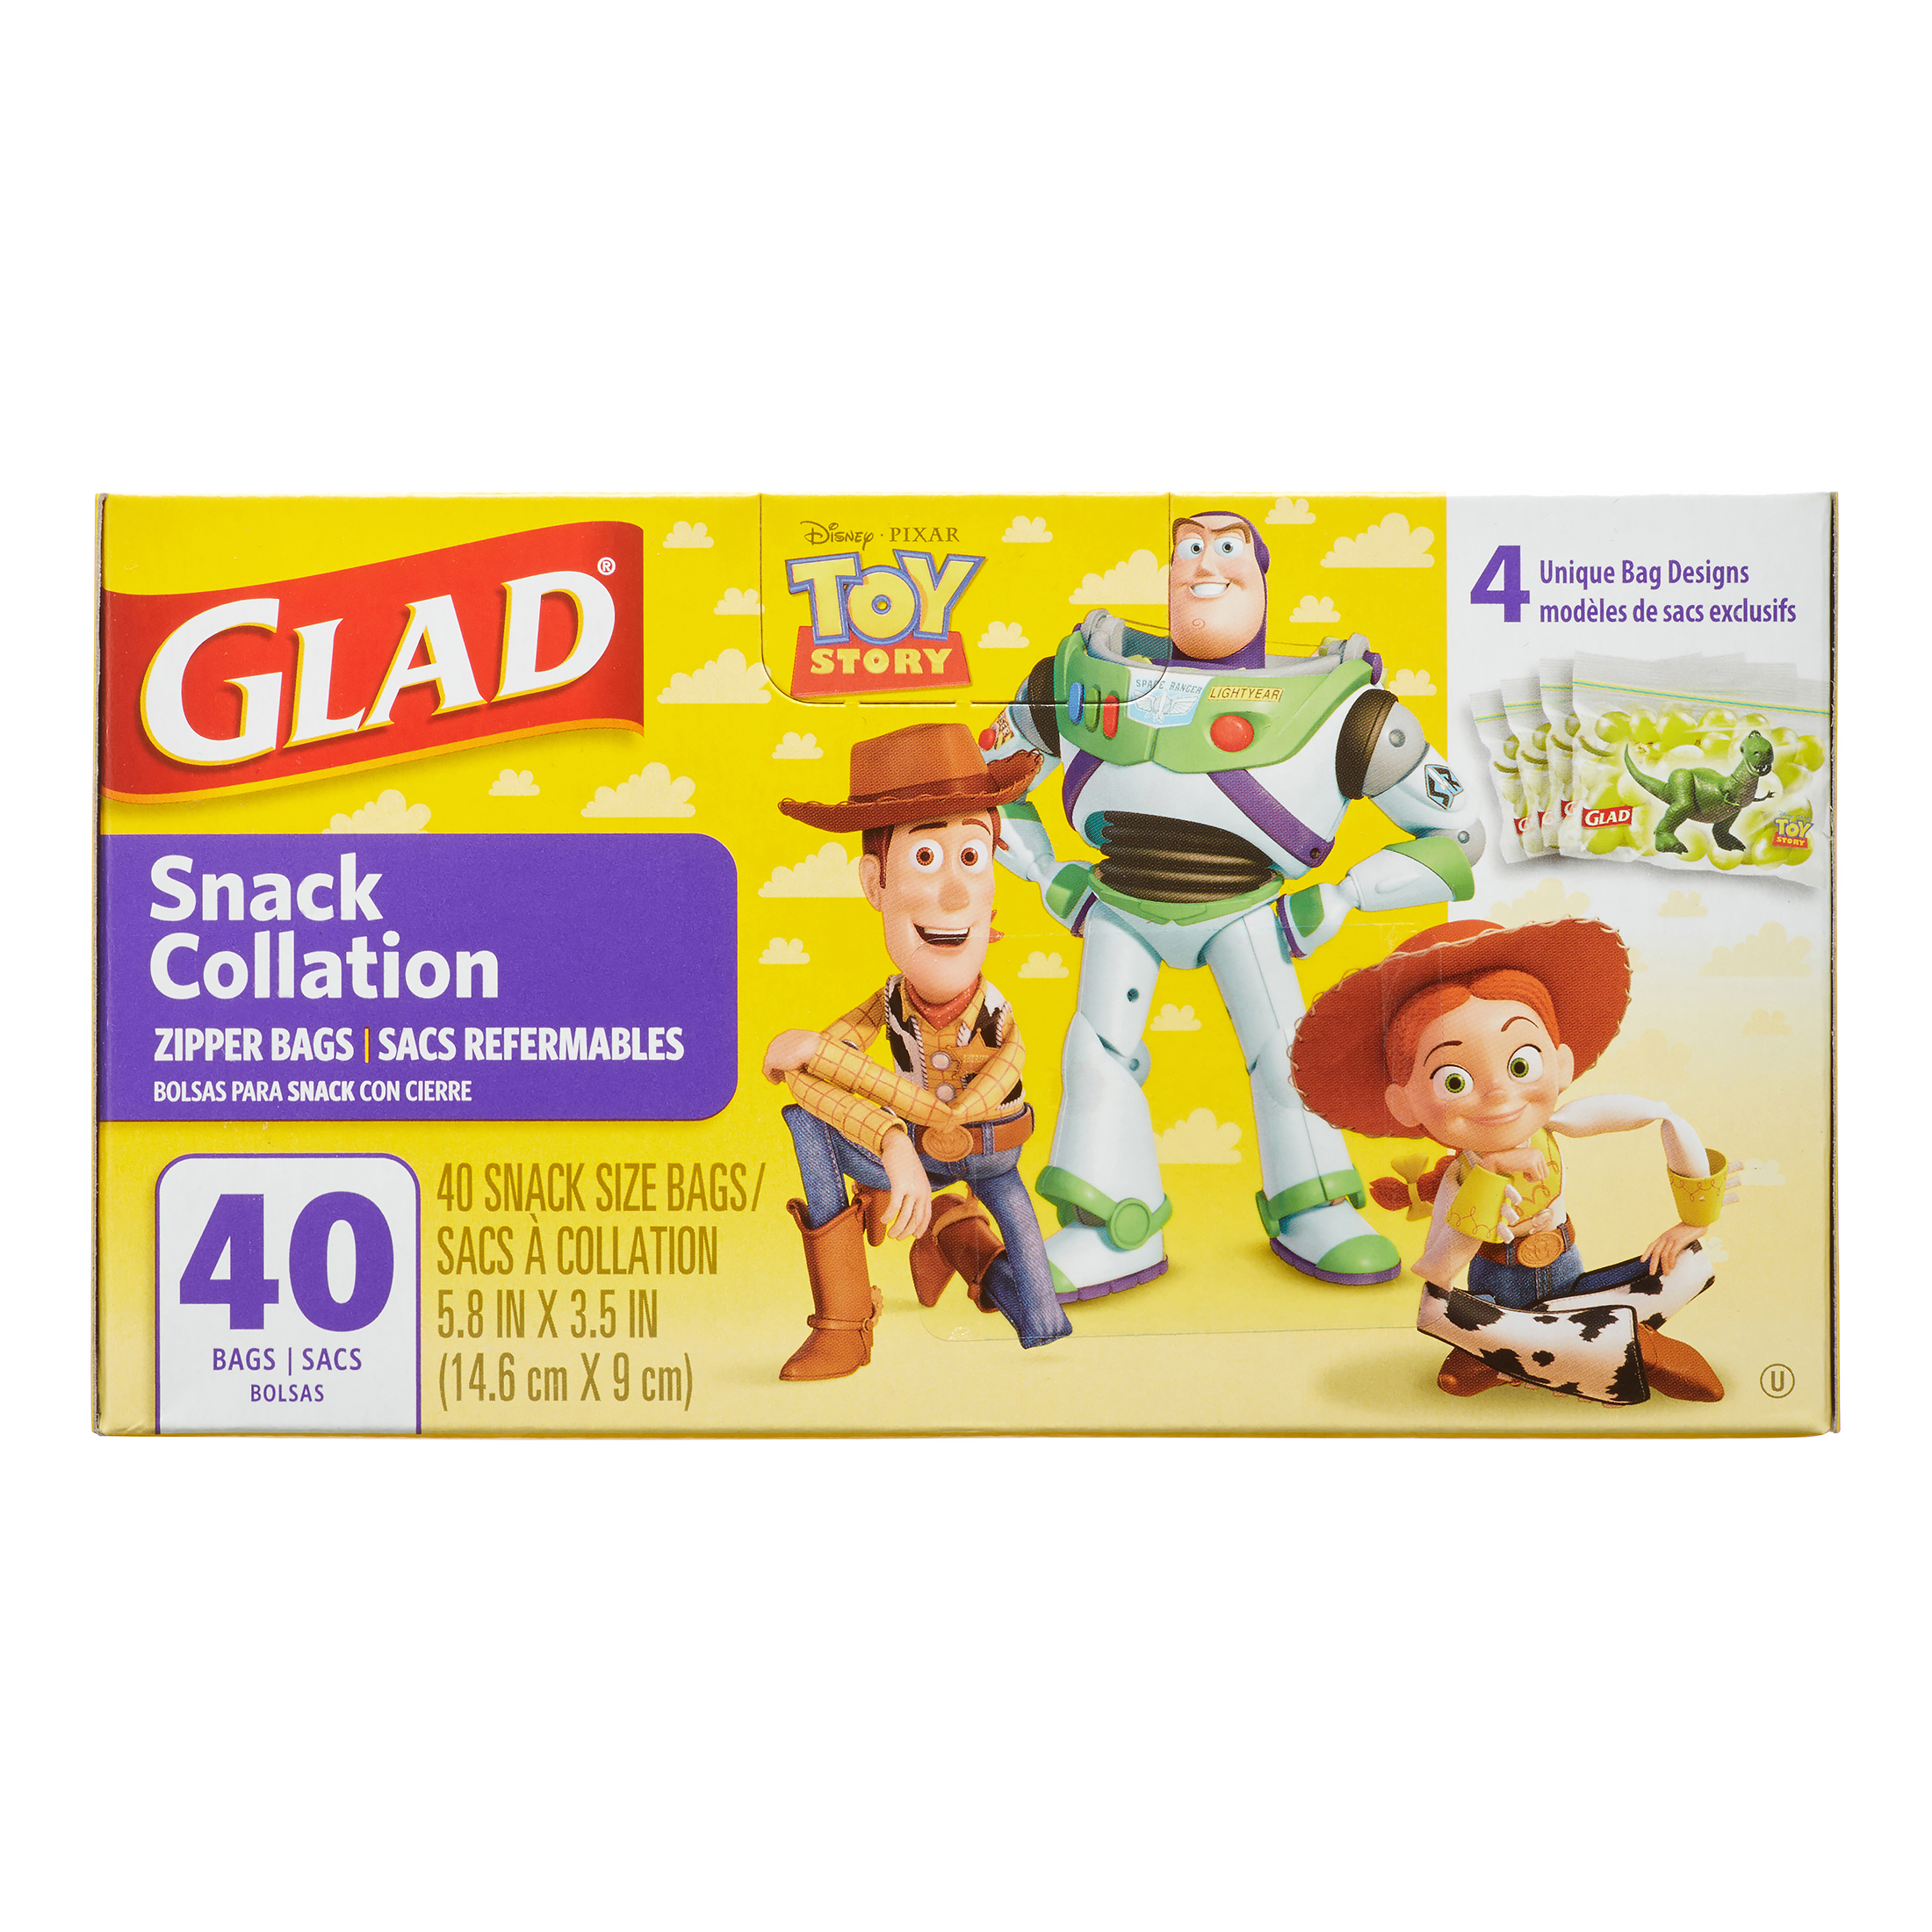 Glad Toy Story Pinch & Seal Zipper Snack Bags, 40 Ct